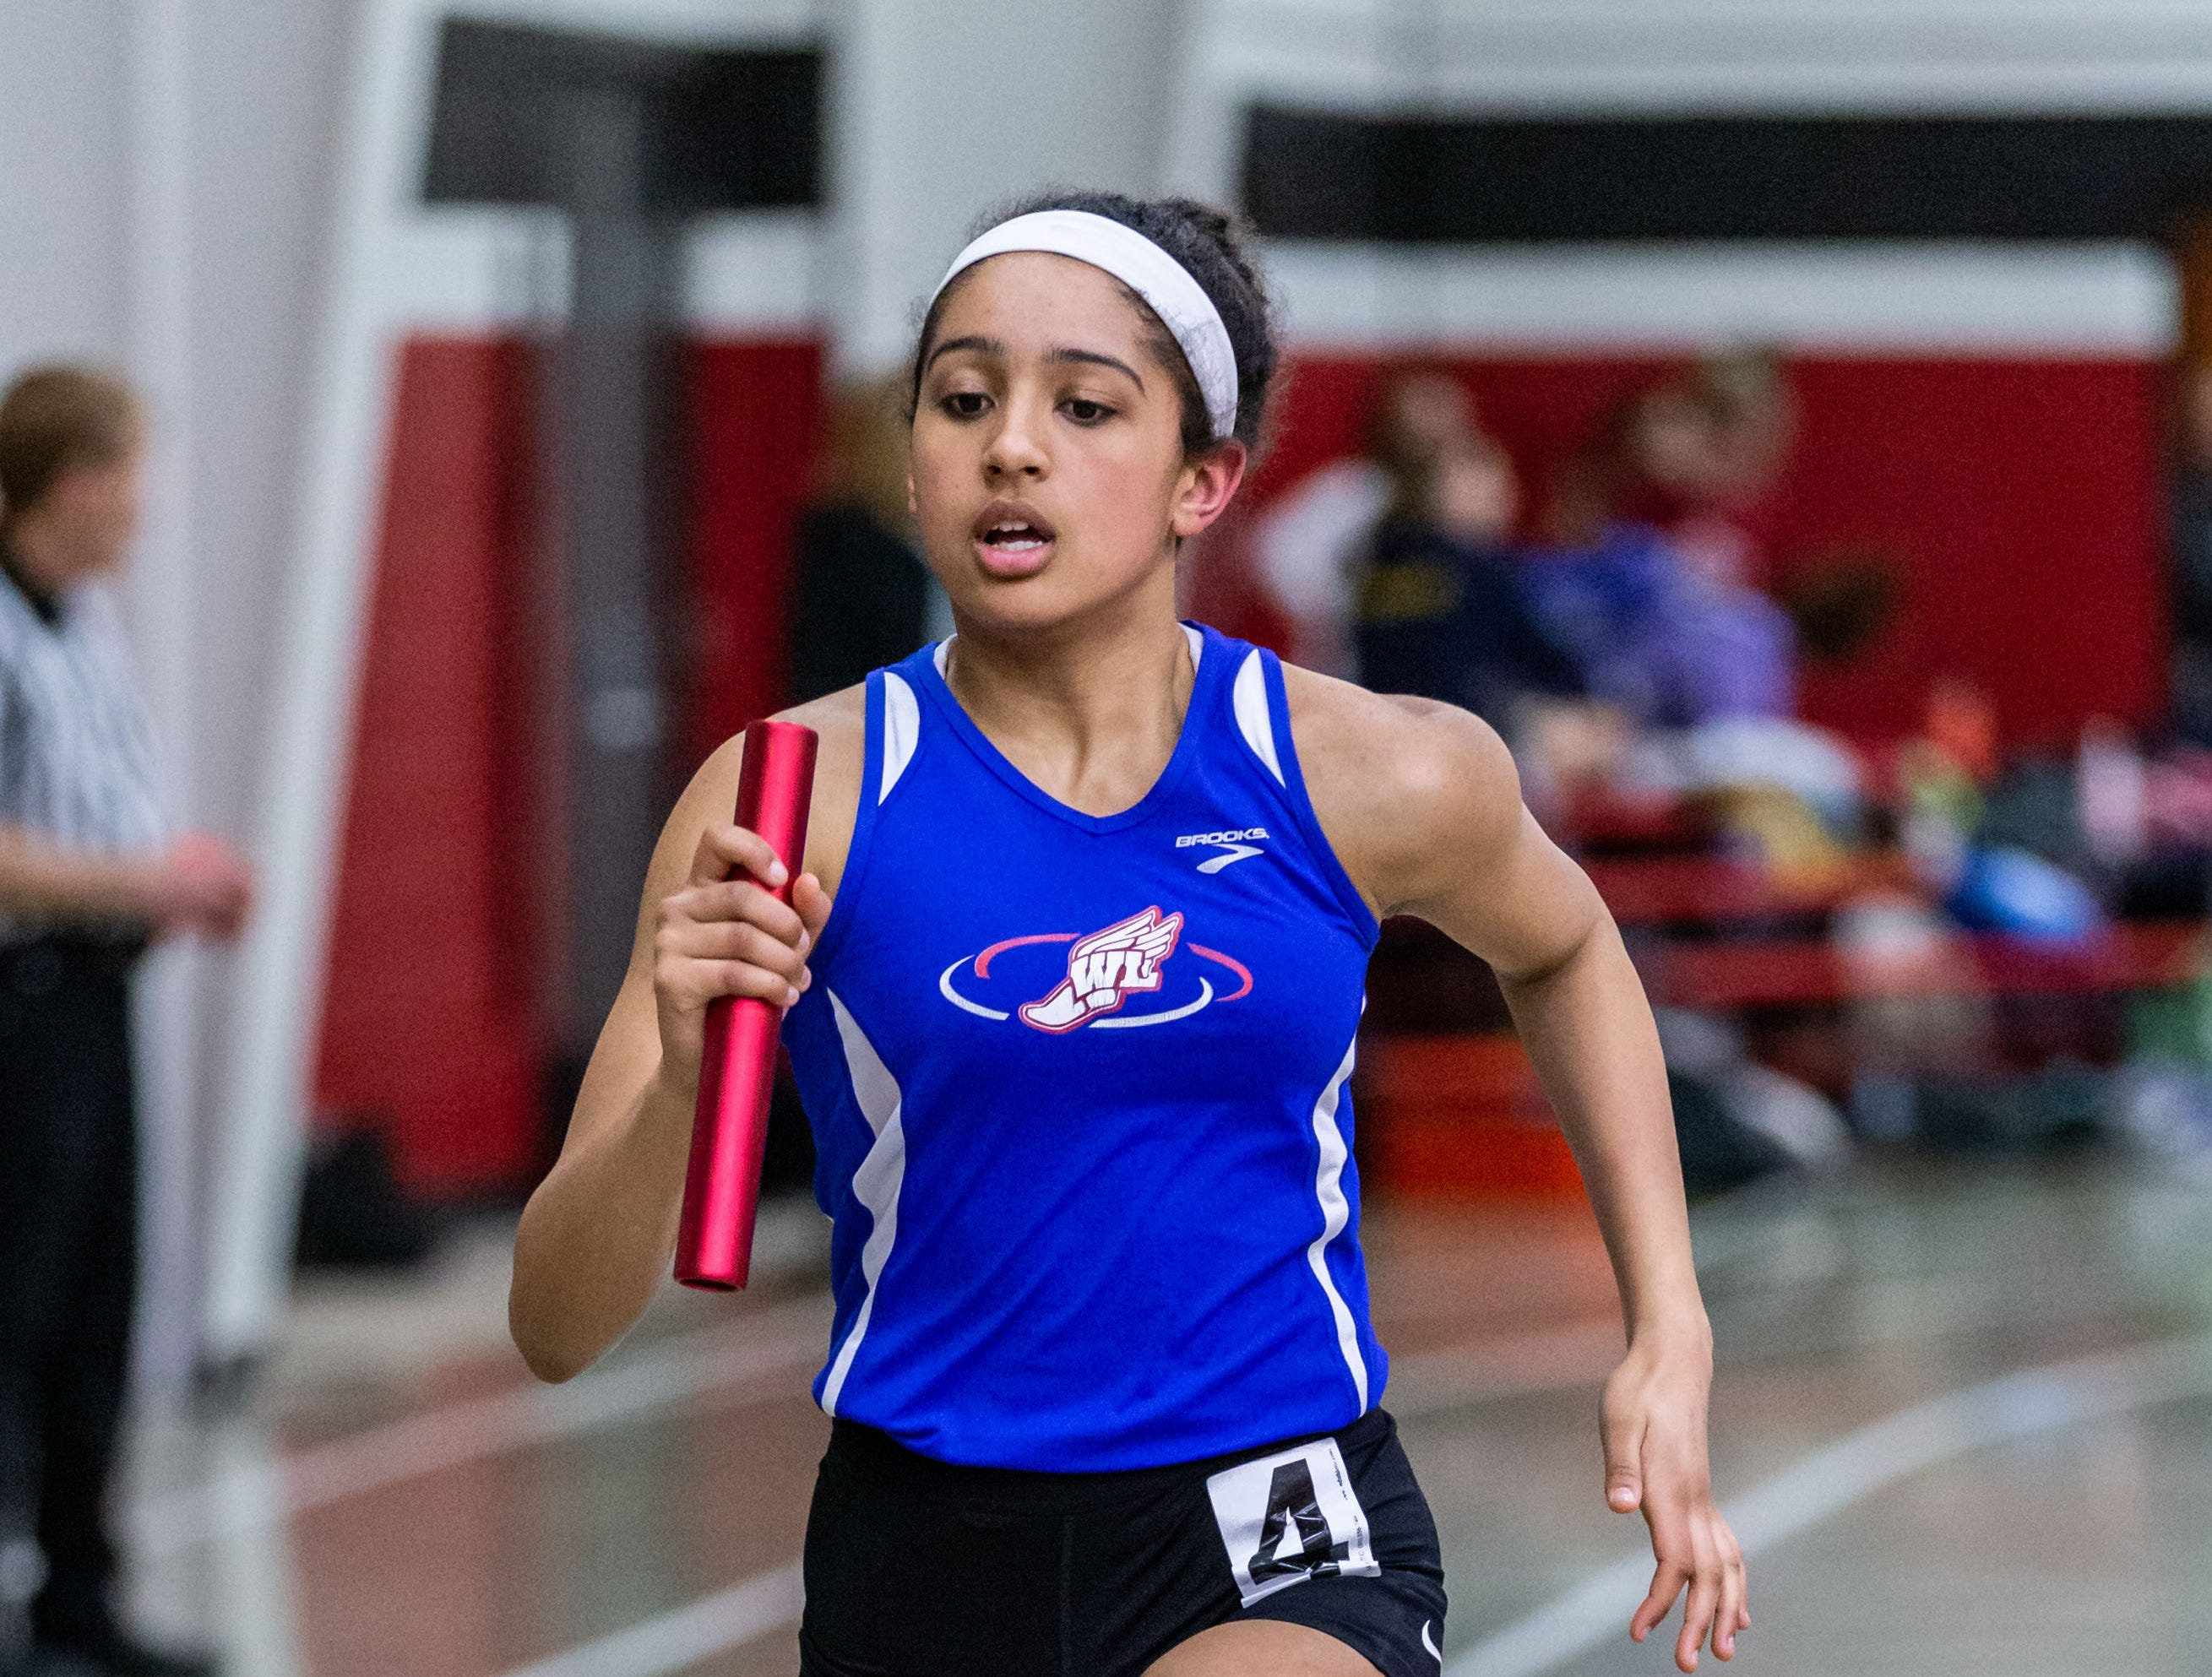 Wisconsin Lutheran's Kayla Wigley competes in the 4x440 yard relay at the Peter Rempe Cardinal Relays hosted by Waukesha South on Thursday, March 21, 2019.